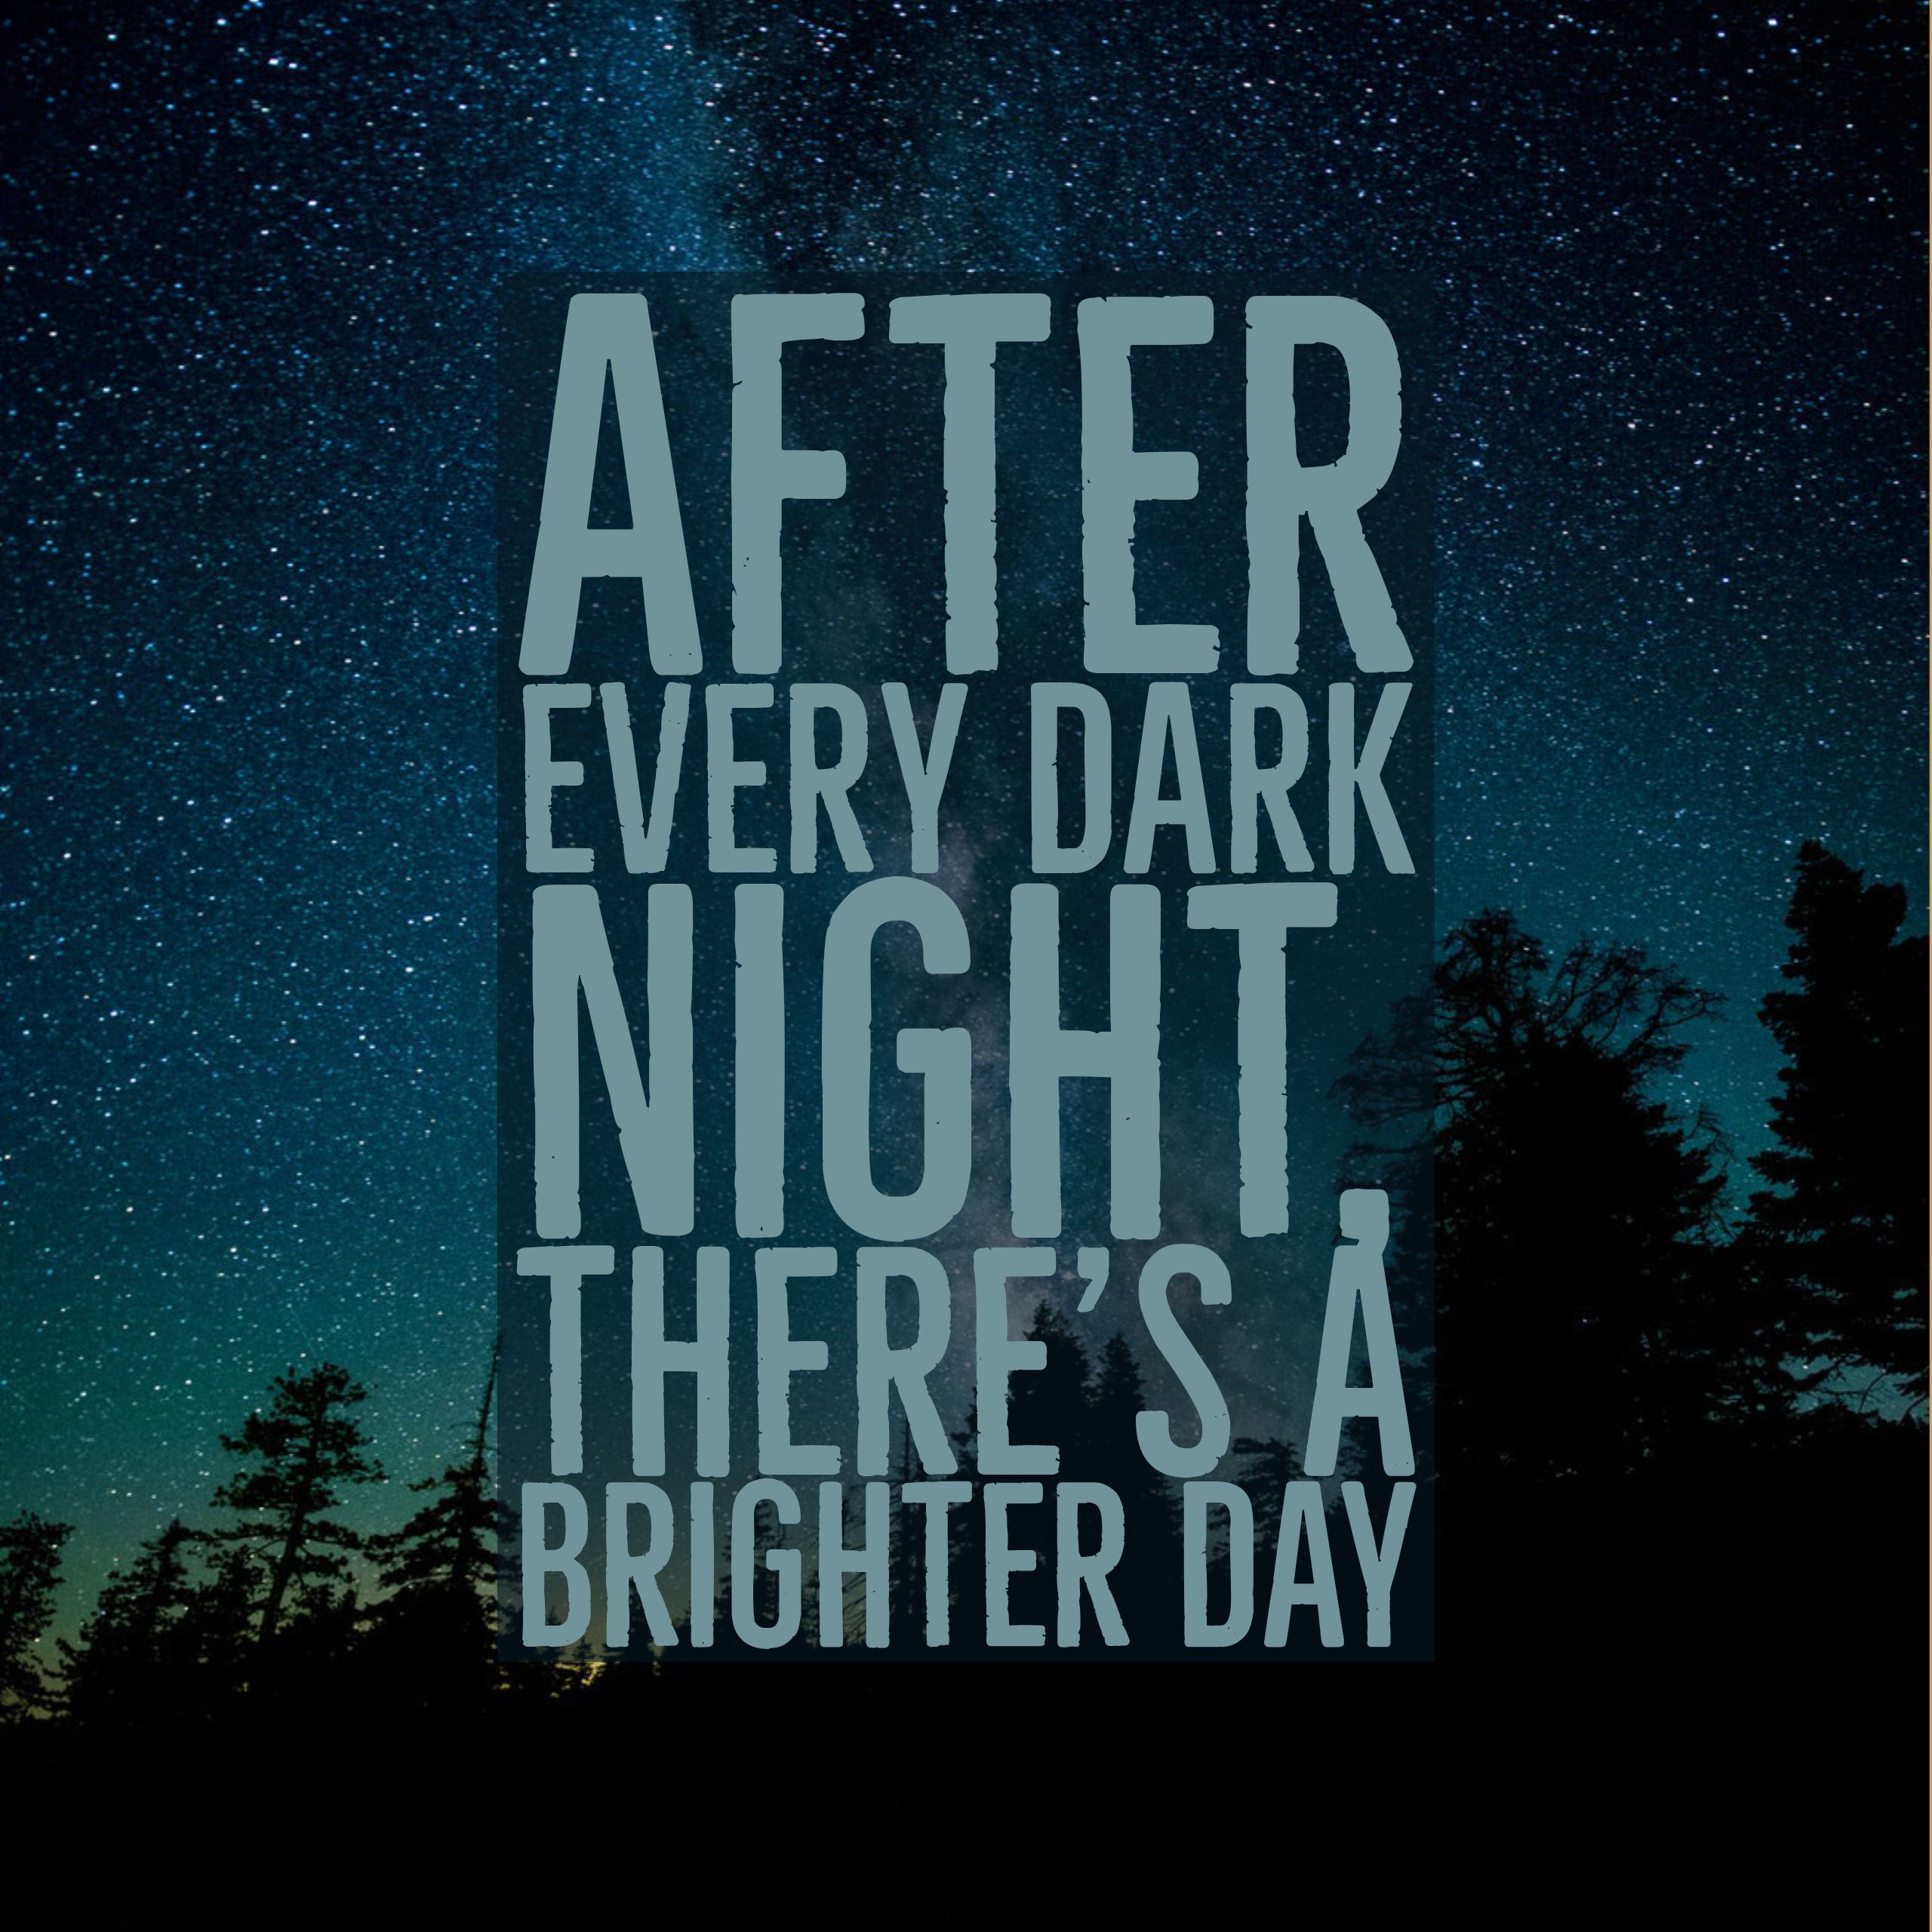 After Every Dark Night There S A Brighter Day Quotes Dailyinspirationalquotes Inspirationalquotes Bright Quotes Dark Night Quotes Deep